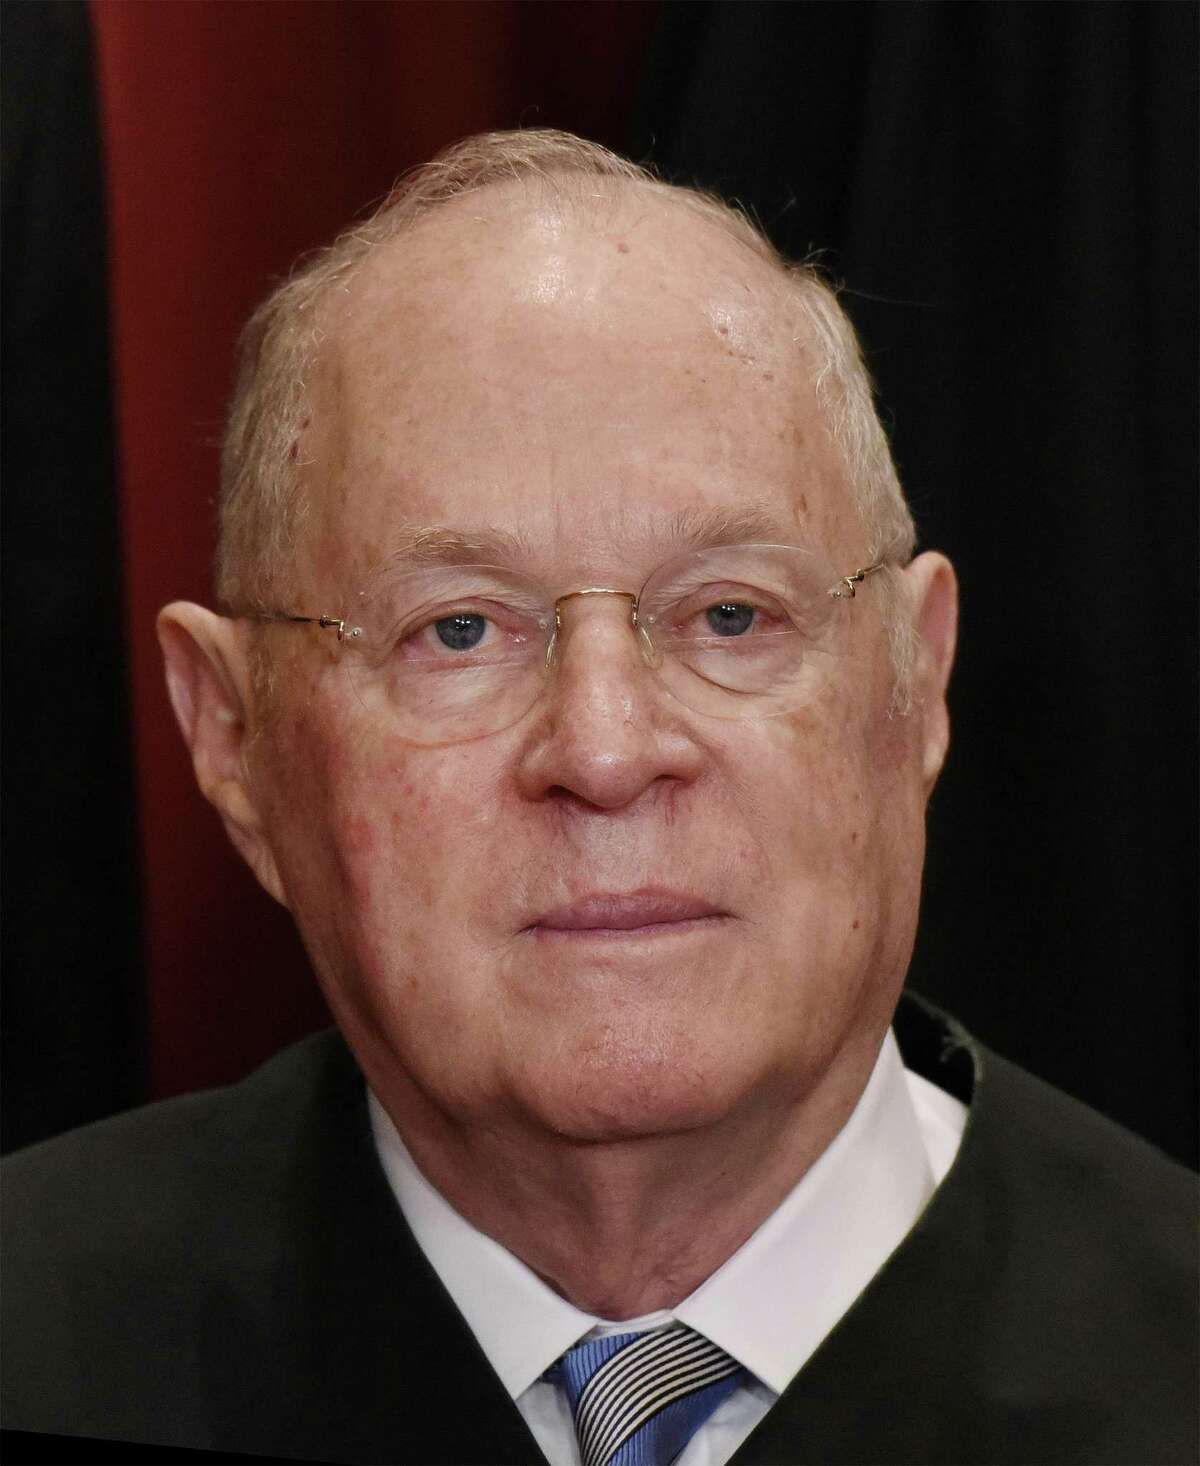 Associate Justice Anthony M. Kennedy poses during a group photograph at the Supreme Court building on June 1, 2017, in Washington, D.C. Kennedy is retiring, giving President Trump a chance to shift the court further to the right. (Olivier Douliery/Abaca Press/TNS)